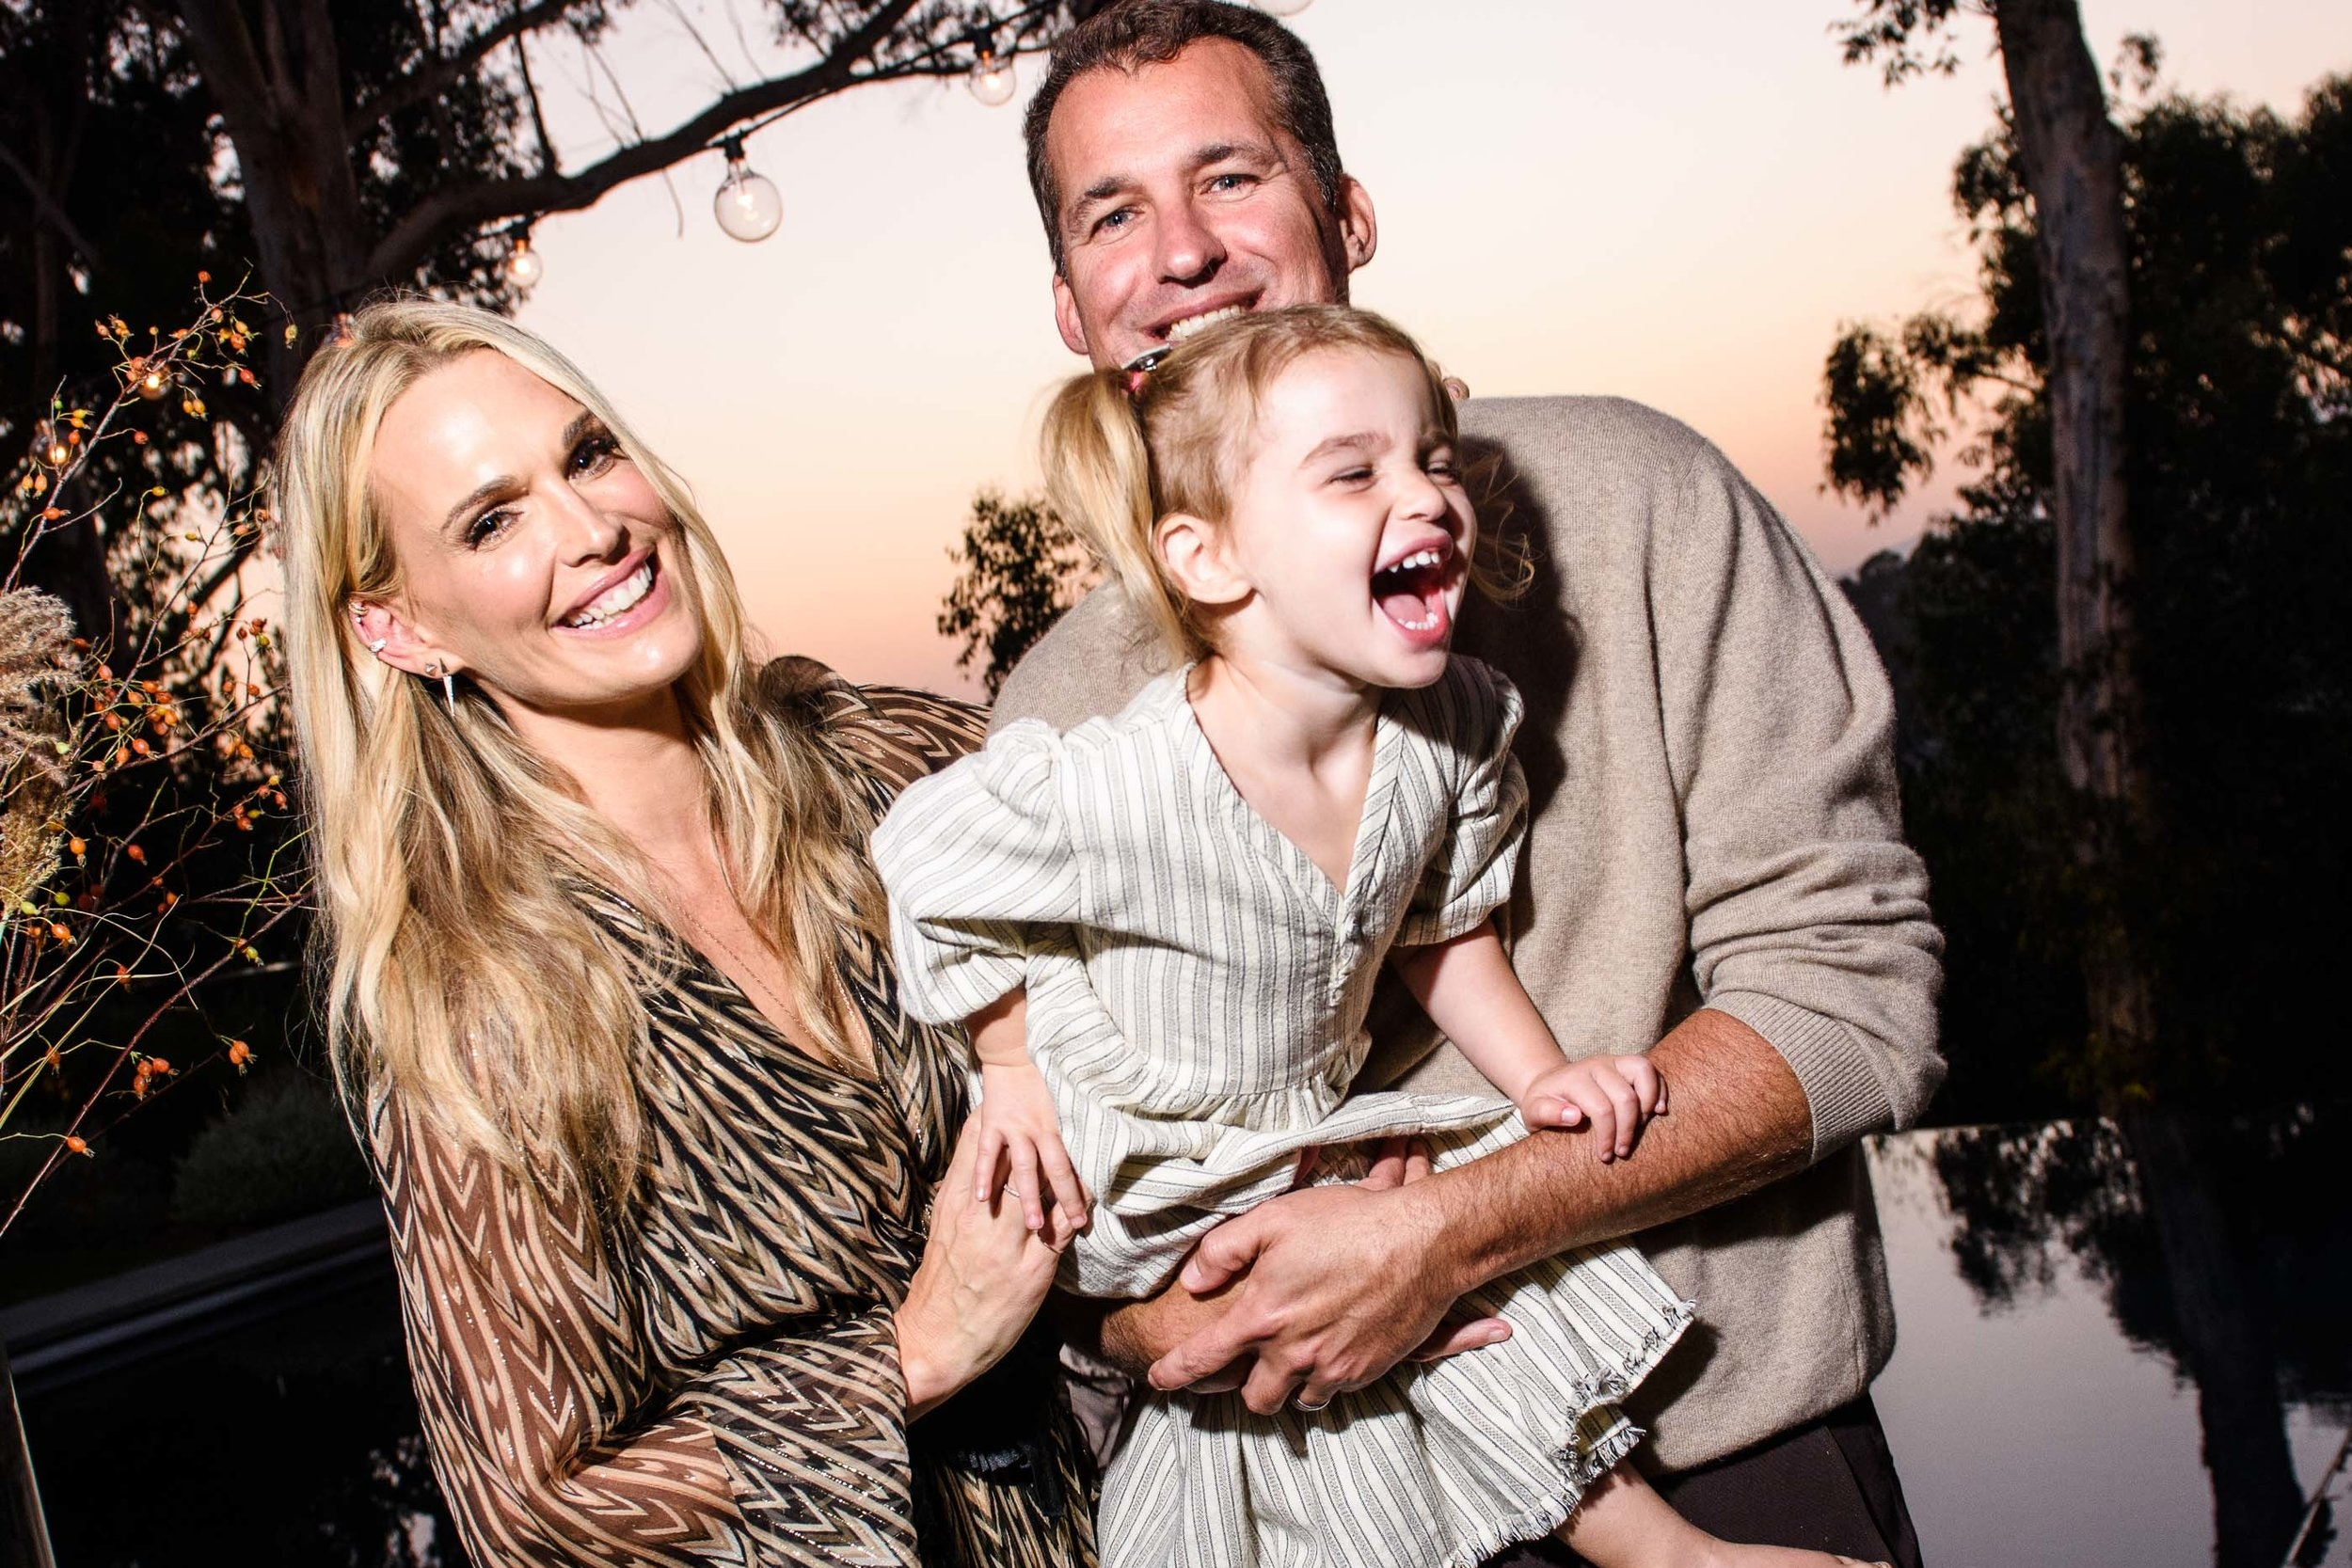 Molly Sims, Scott Stuber and their daughter Scarlett at the Everyday Chic Book Launch, photography by Hannah Thomson